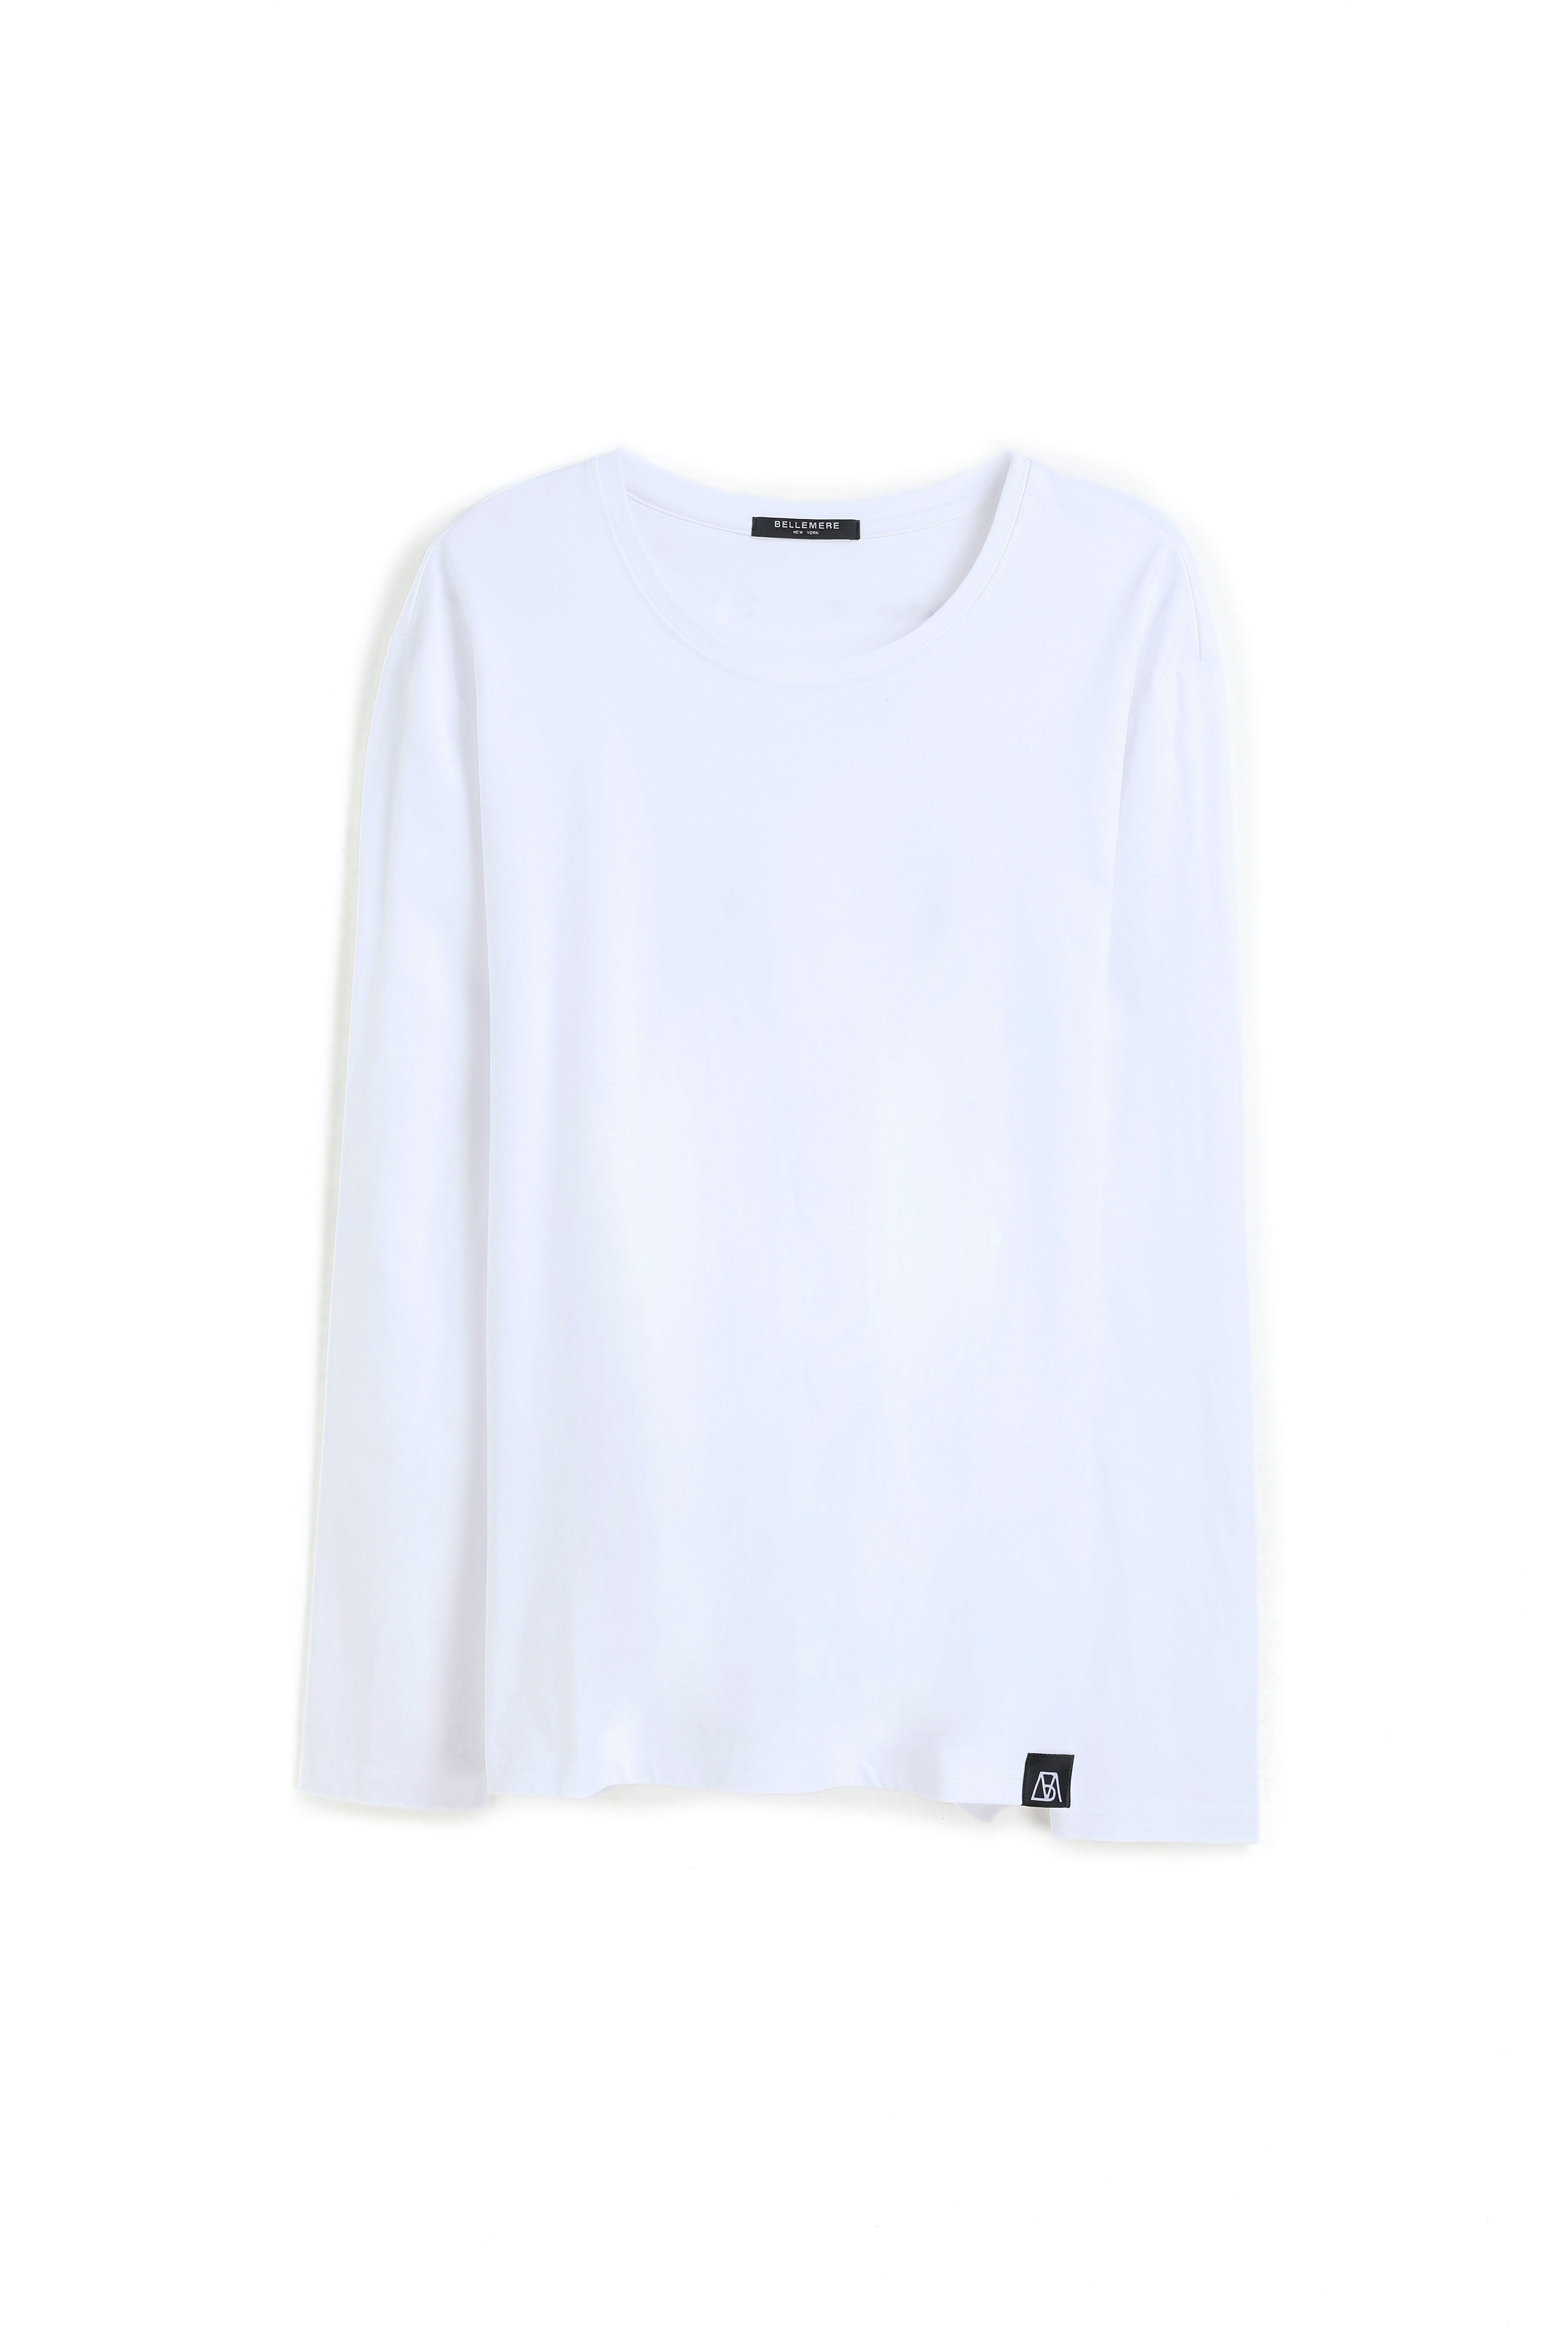 Long Crew Neck Mercerized Cotton T- shirt